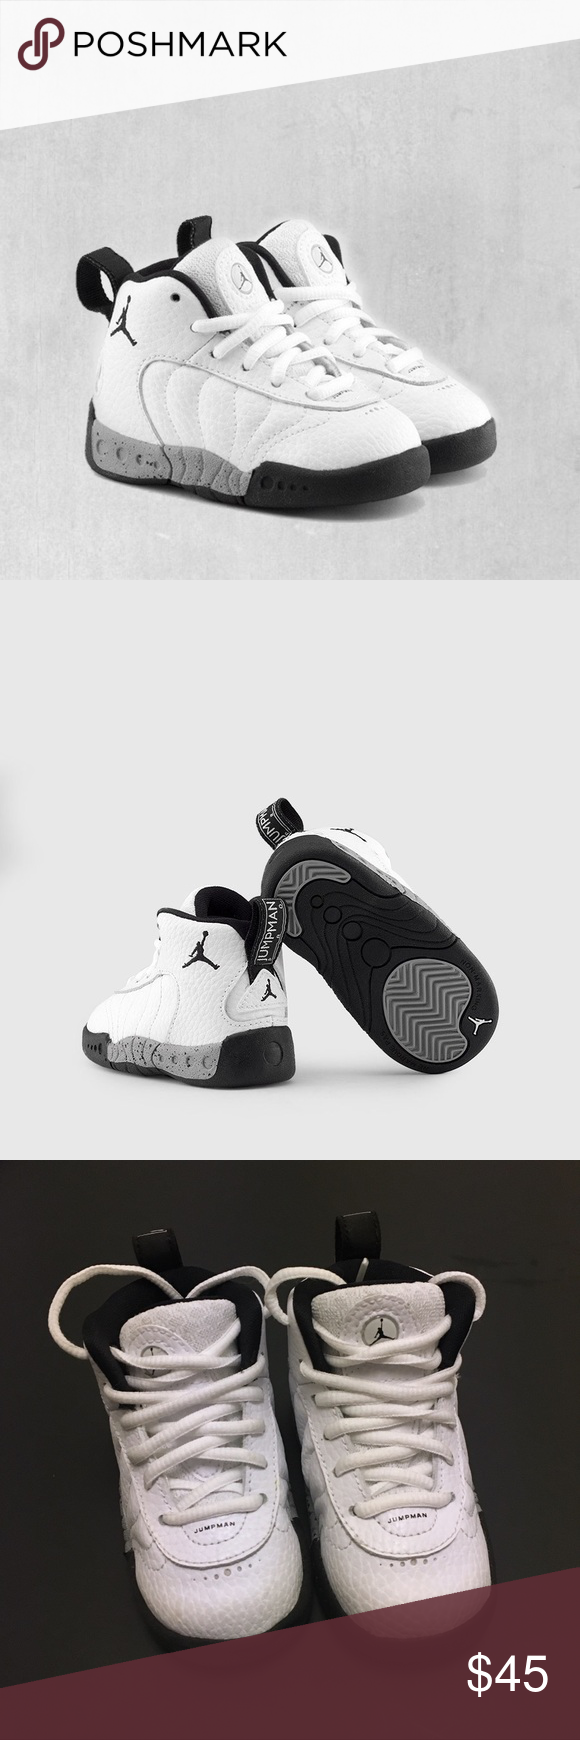 a197cc3b45cc7 Jordan Jumpman Pro Toddler/Baby Shoes Worn once In excellent ...